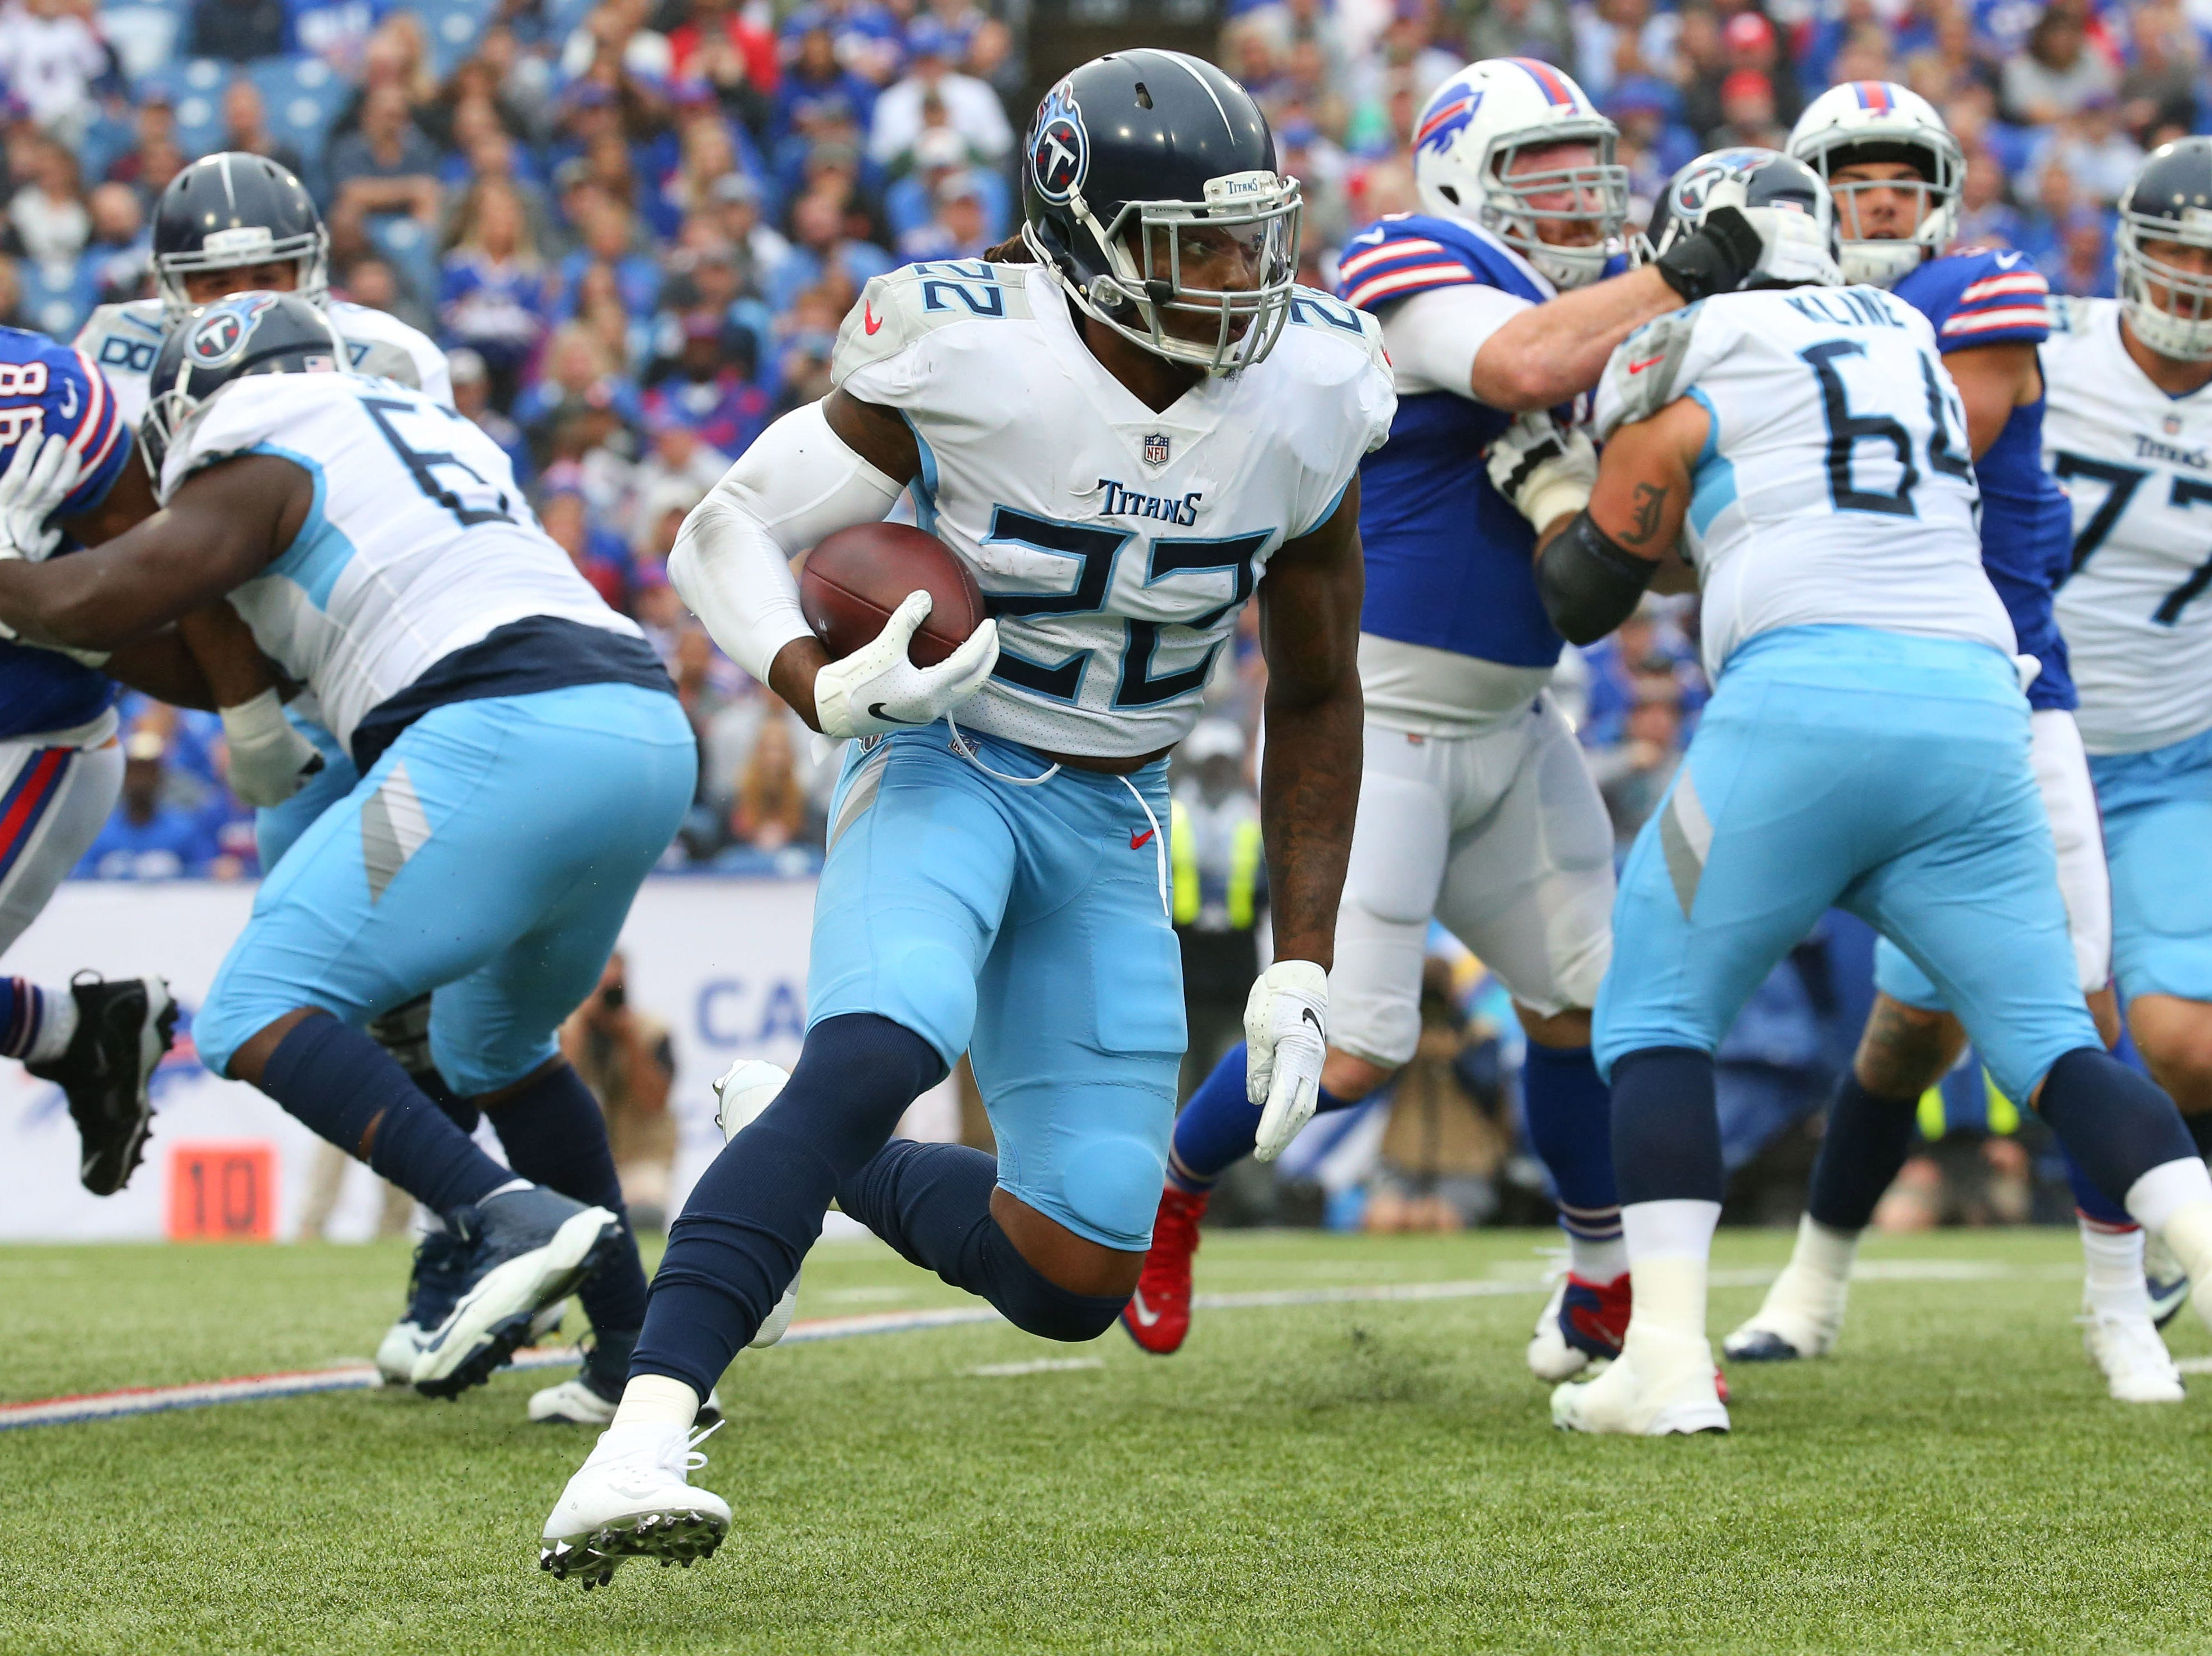 Oct 7, 2018; Orchard Park, NY, USA; Tennessee Titans running back Derrick Henry (22) runs with the ball against the Buffalo Bills during the second quarter at New Era Field.